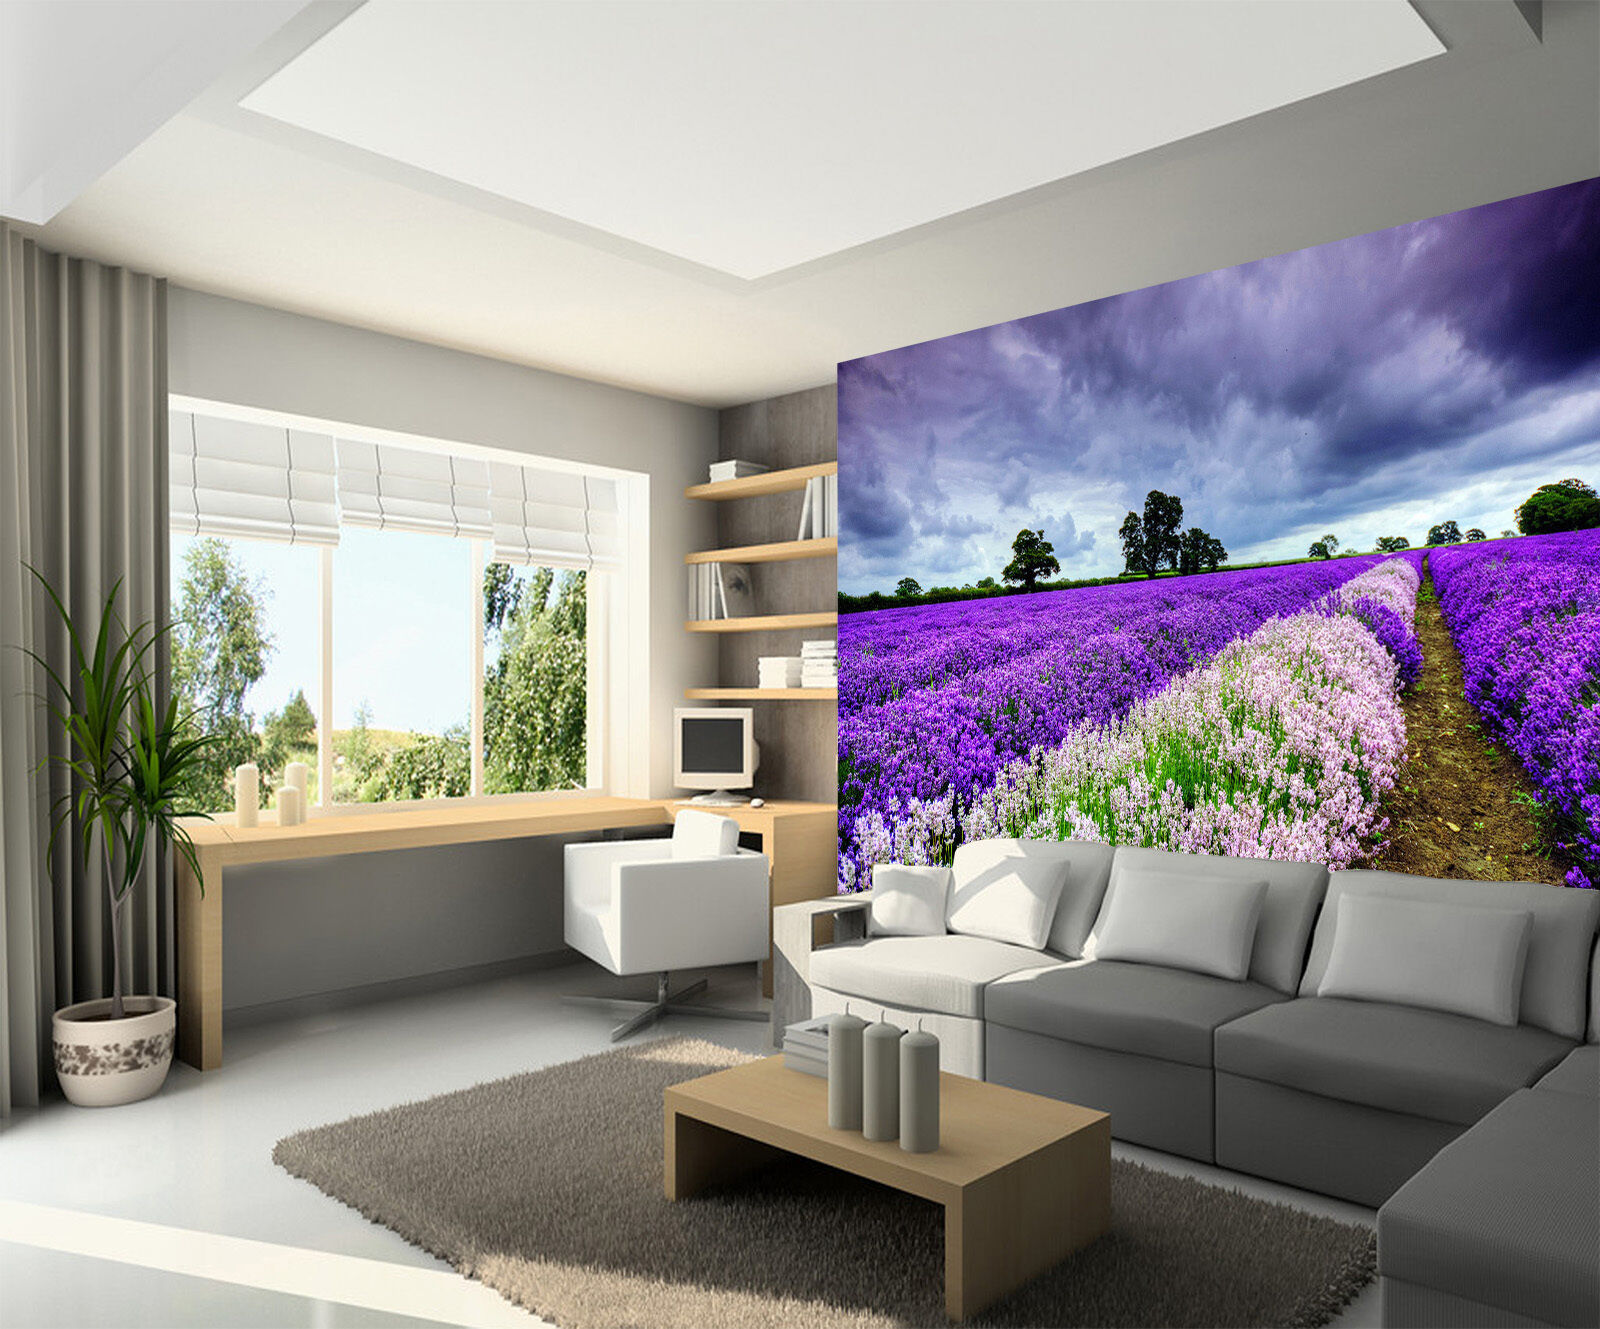 3D Flowers Field Dark Clouds Wall Paper Wall Print Decal Wall AJ WALLPAPER CA